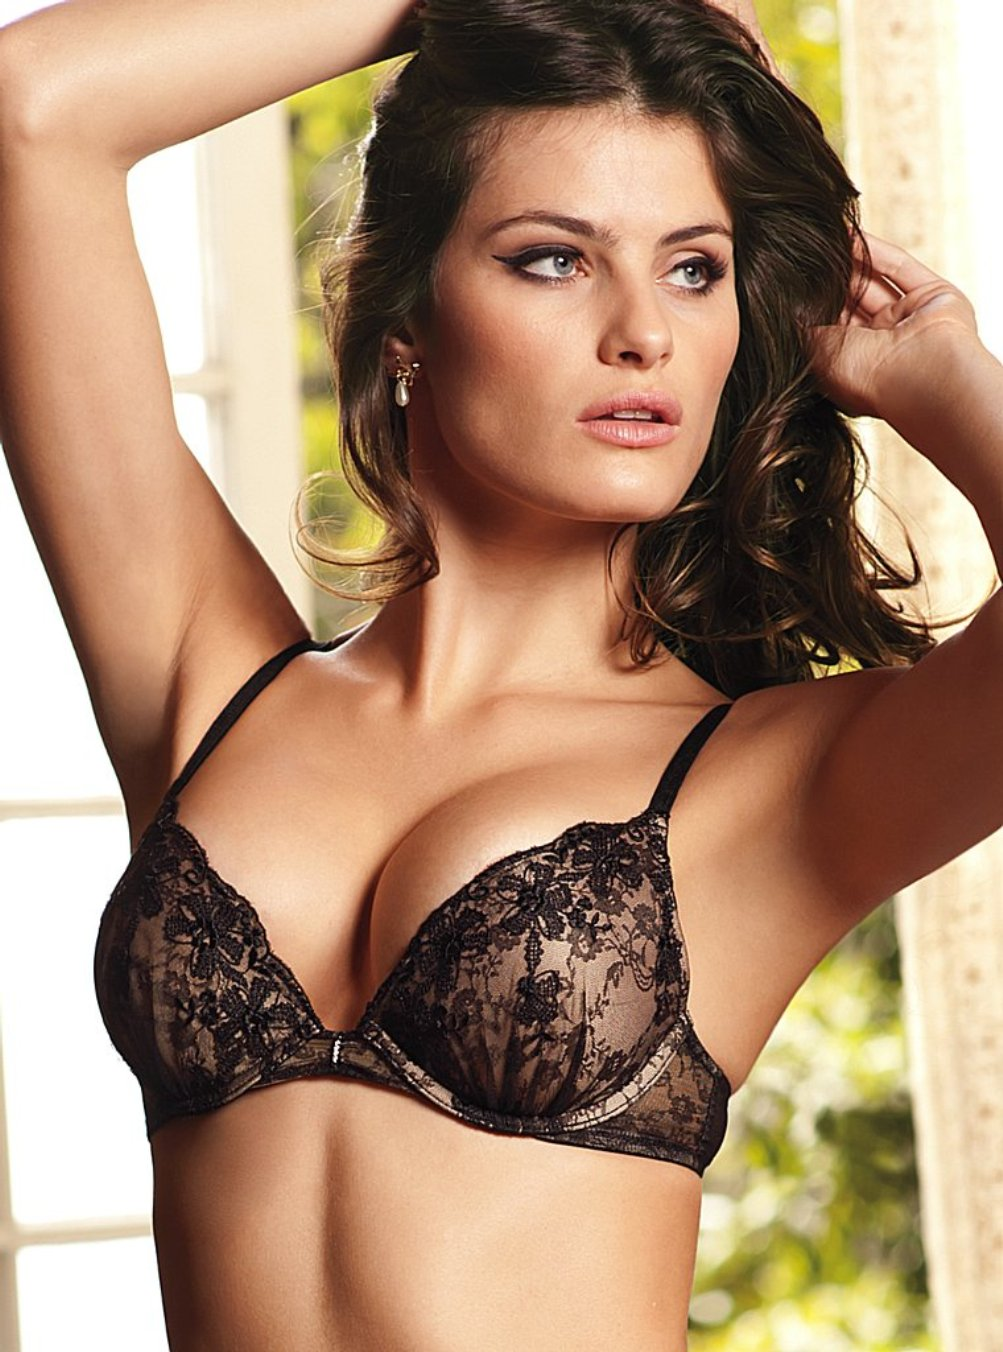 Consider, that Model isabeli fontana hot something is